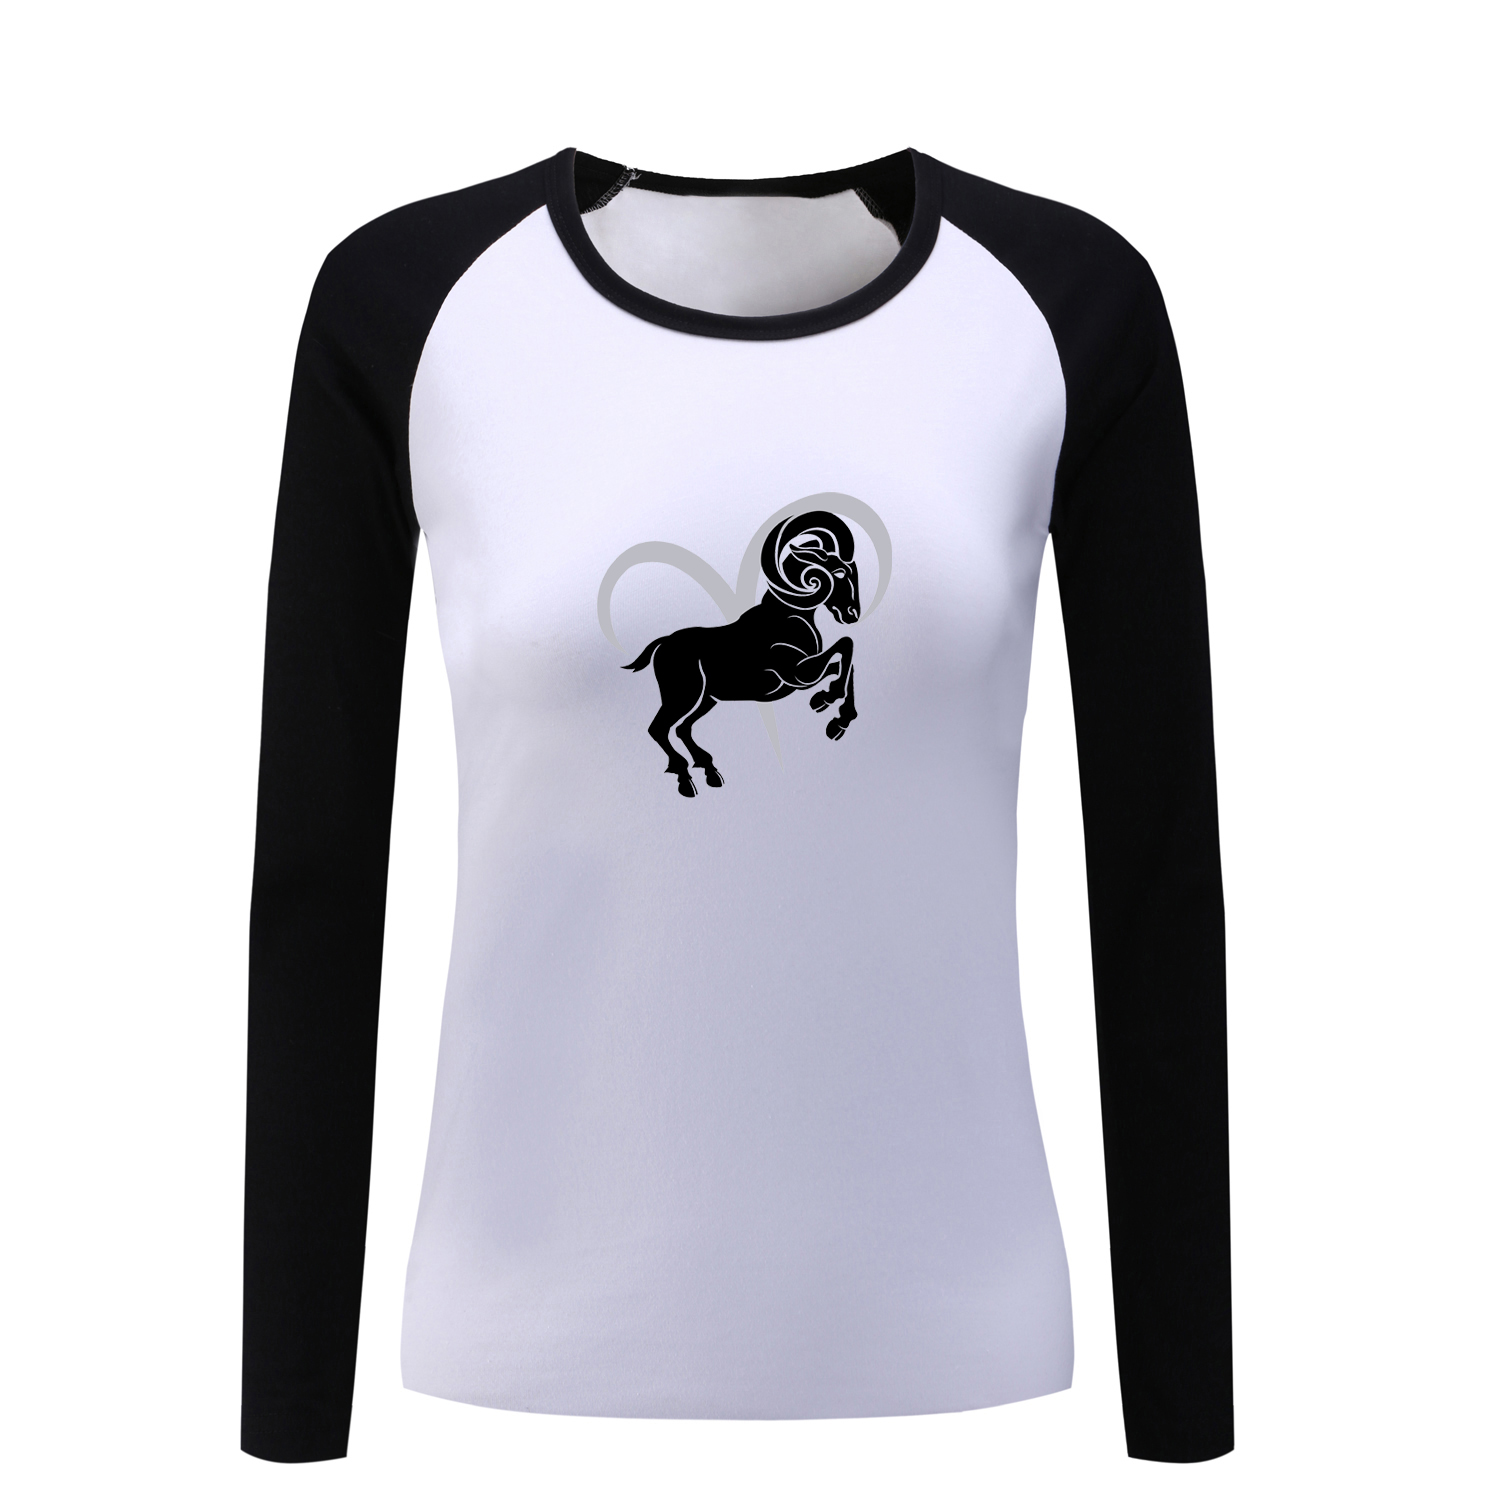 Design t shirt long sleeve - Constellation Aries Taurus Tattoo Design Long Sleeve T Shirt Women Horse Tshirt Cotton T Shirt